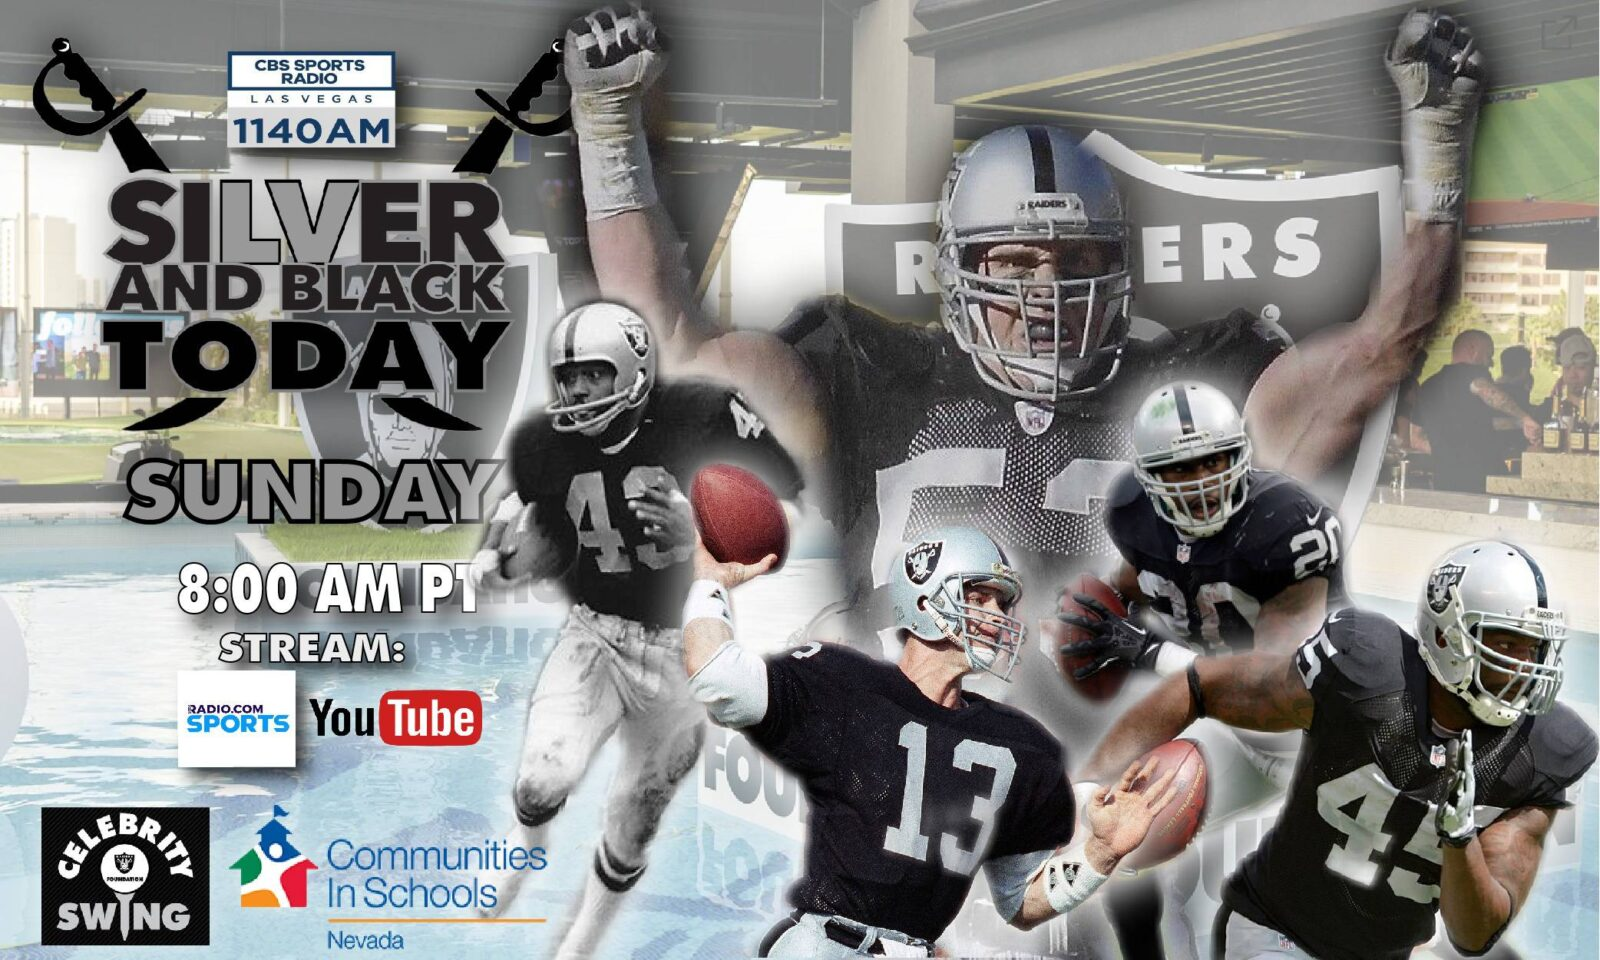 silver and black today cbs sports radio show